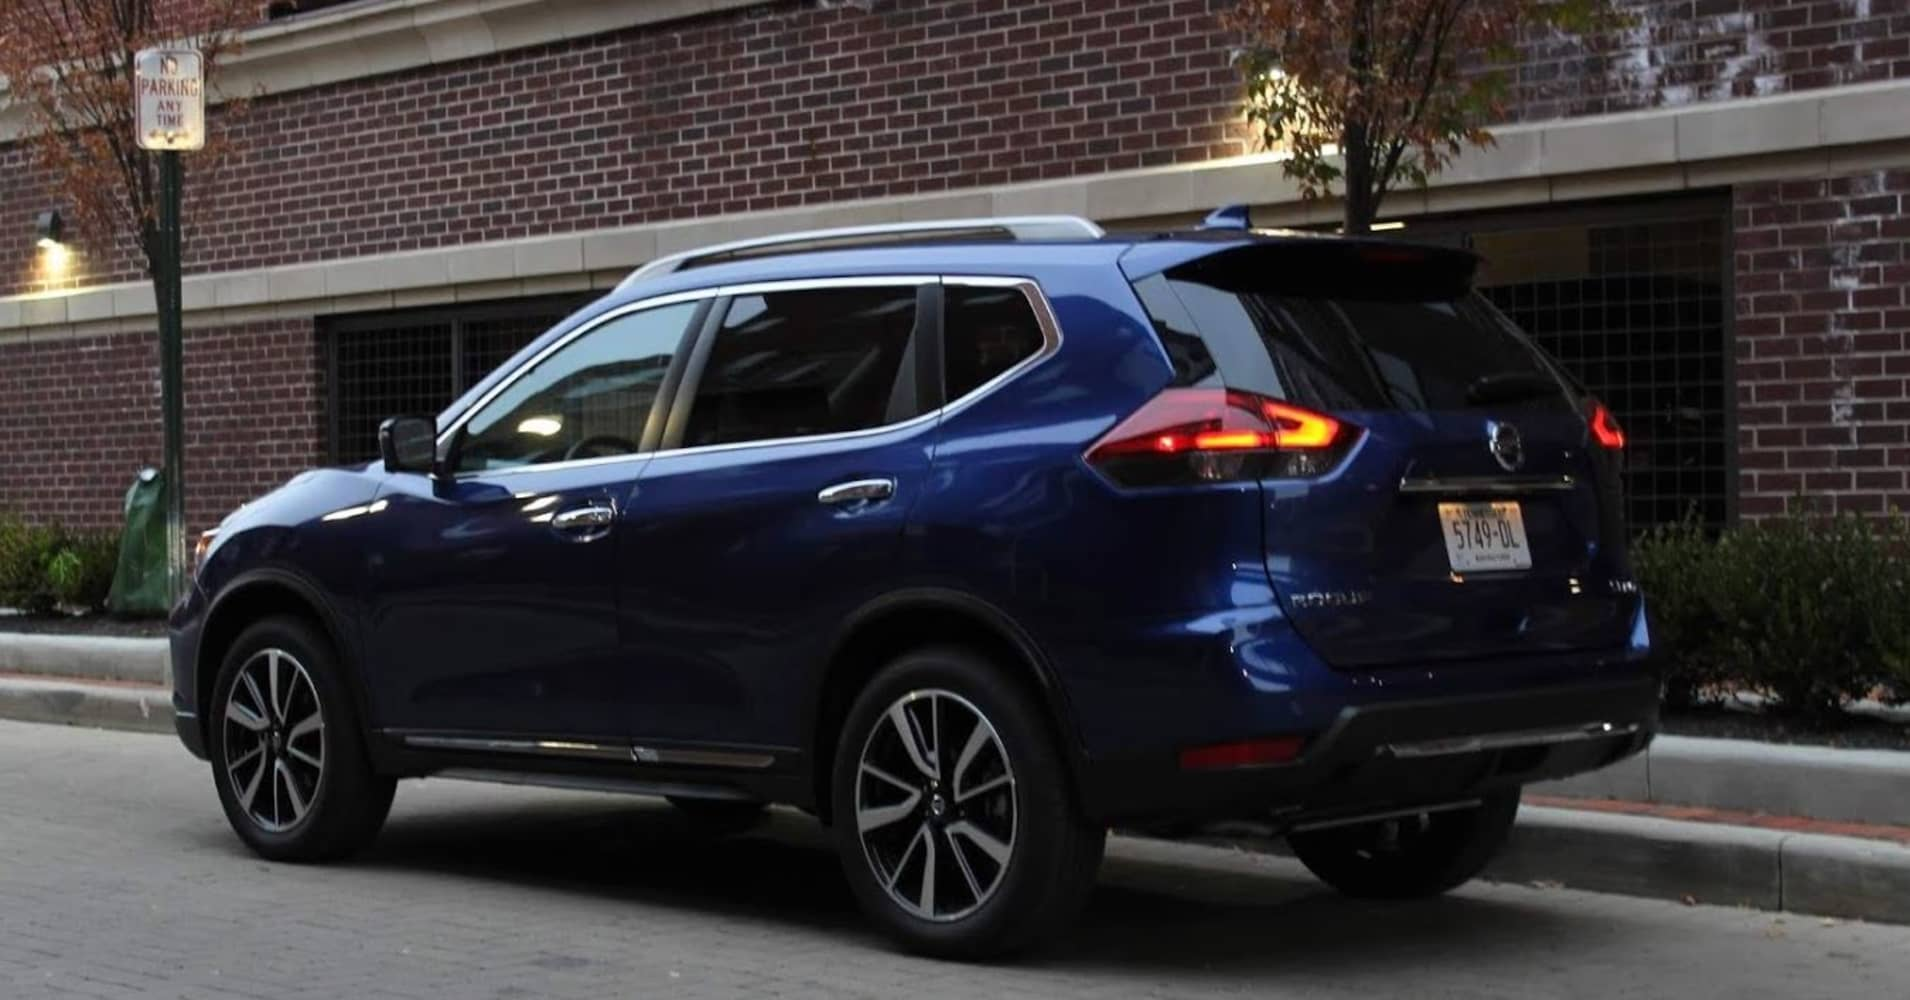 The 2019 Nissan Rogue isn't exciting but it's a great crossover with good semi-autonomous driving tech